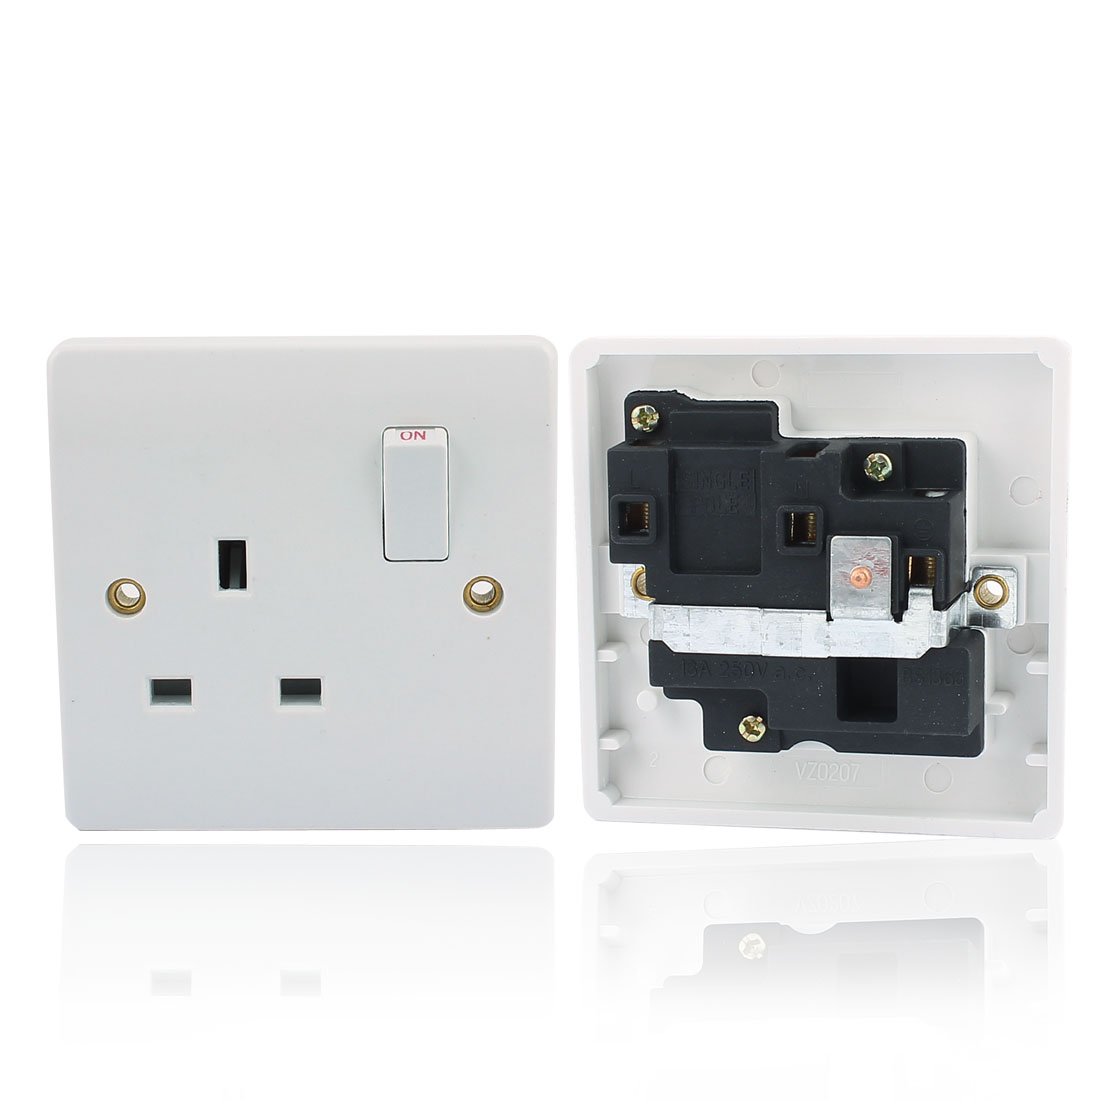 AC 250V UK Socket Mains Power Wall Plate Panel Switch Outlet